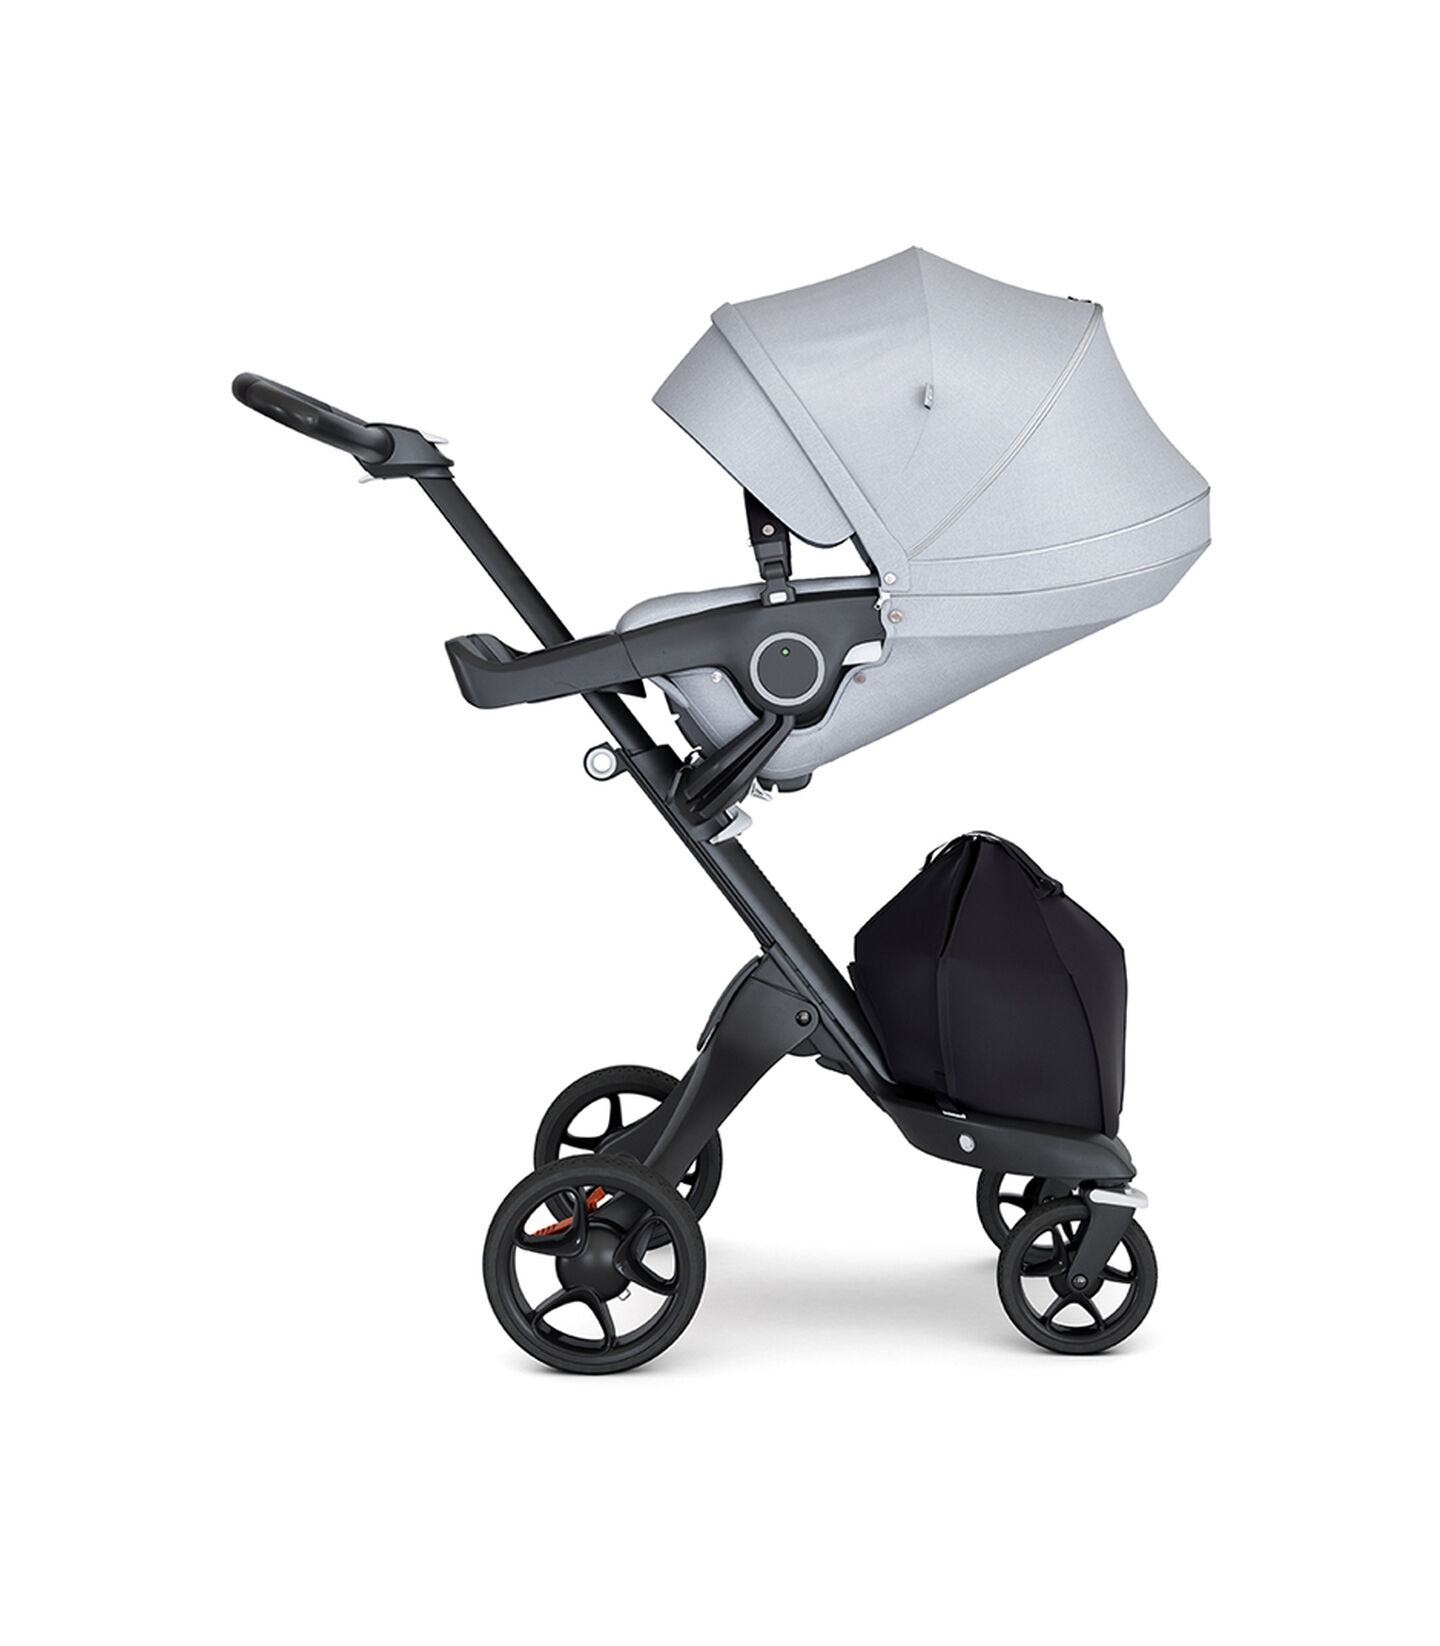 Stokke® Xplory® with Black Chassis and Leatherette Black handle. Stokke® Stroller Seat Grey Melange with extended canopy.